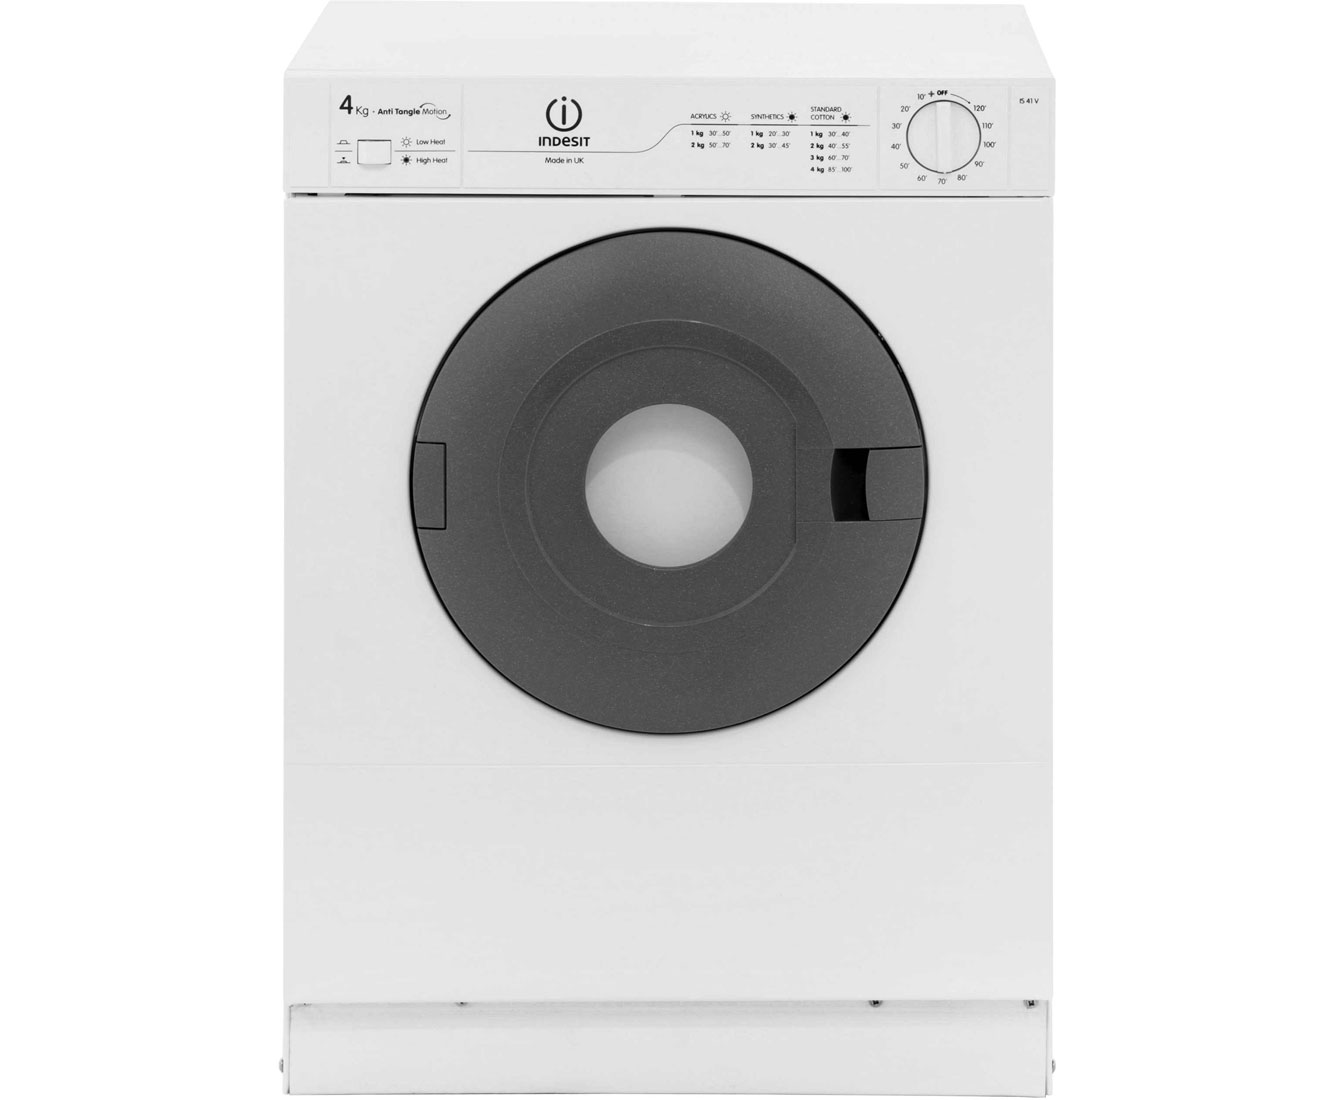 Indesit Is41v 4kg Vented Tumble Dryer Review